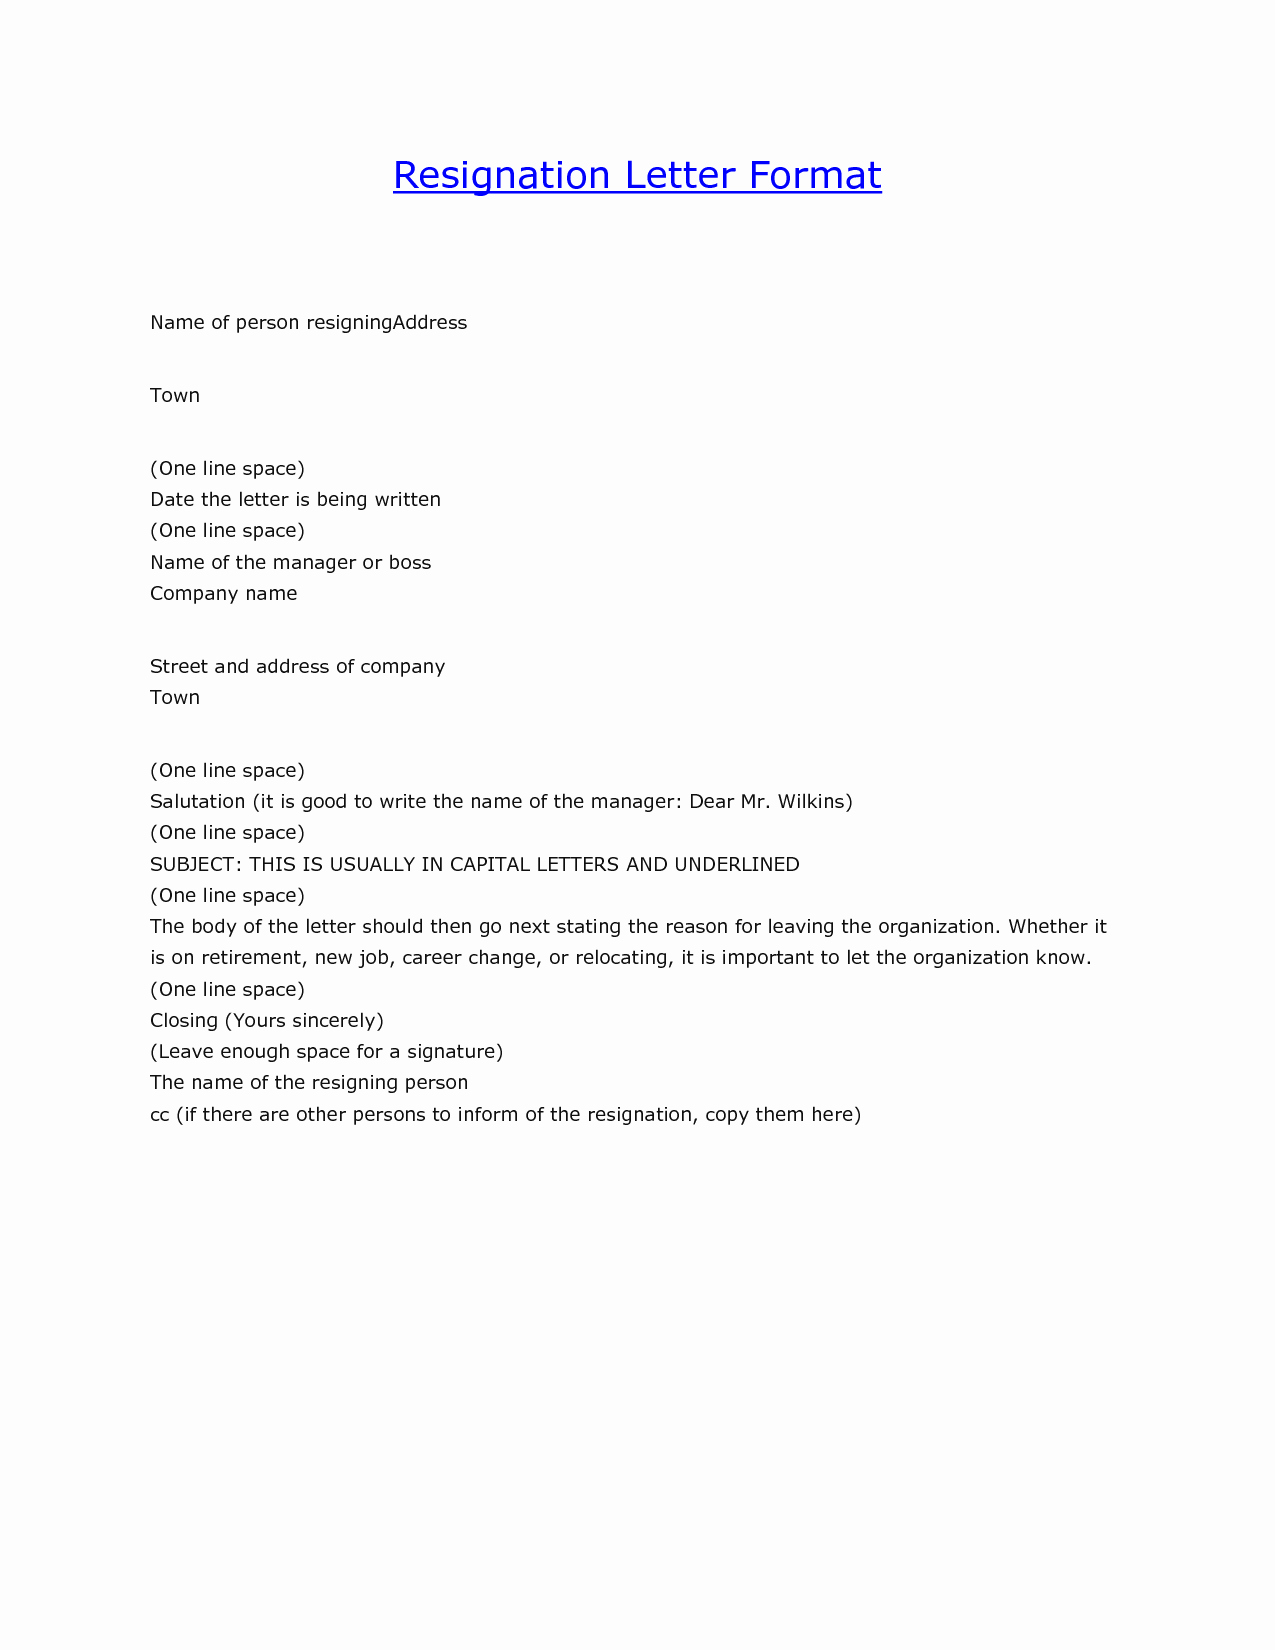 Letter format On Word Best Of Letter Resignation format